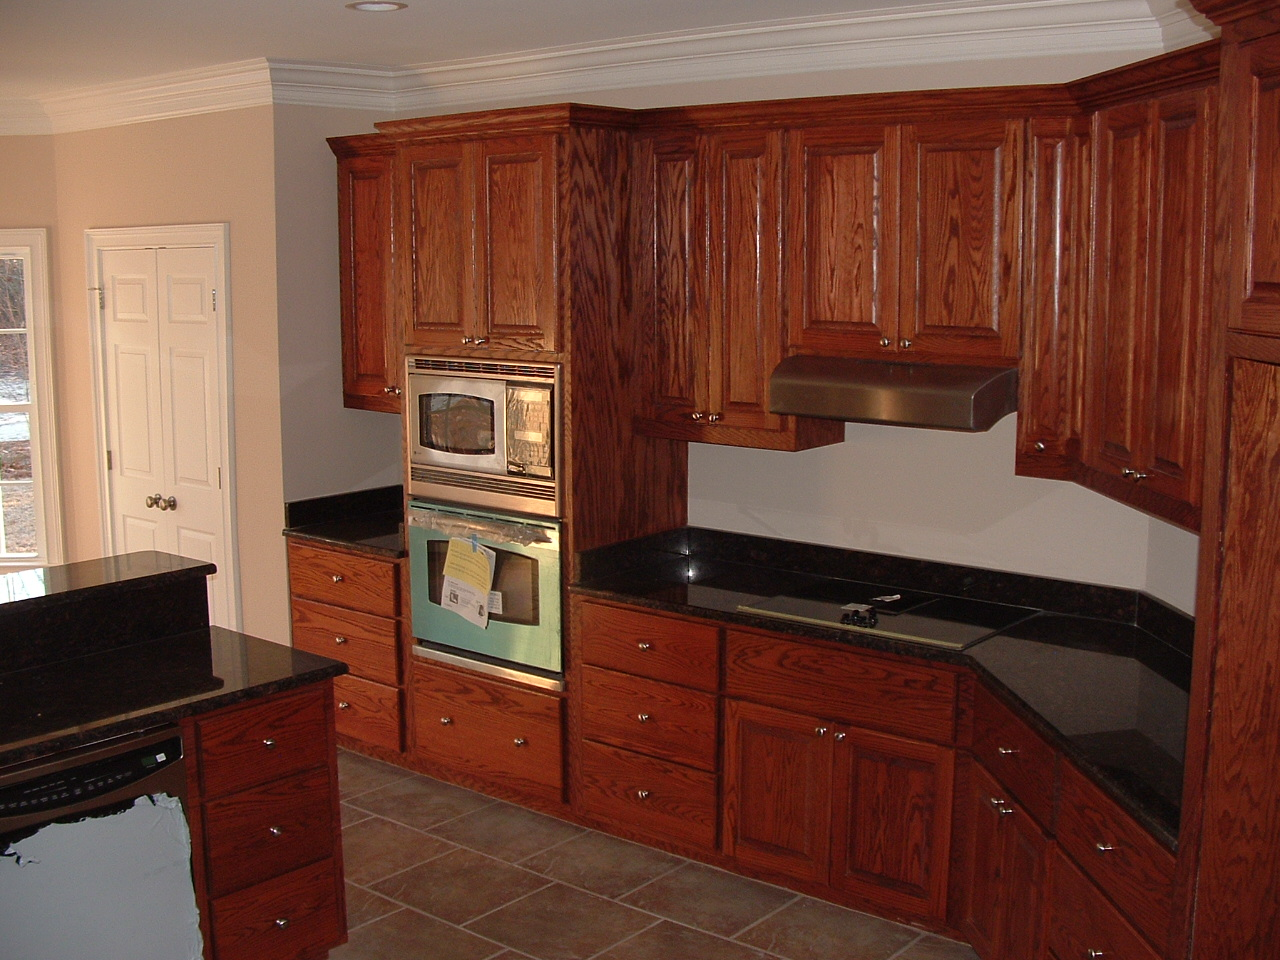 Kitchen cabinets with drawers Photo - 4